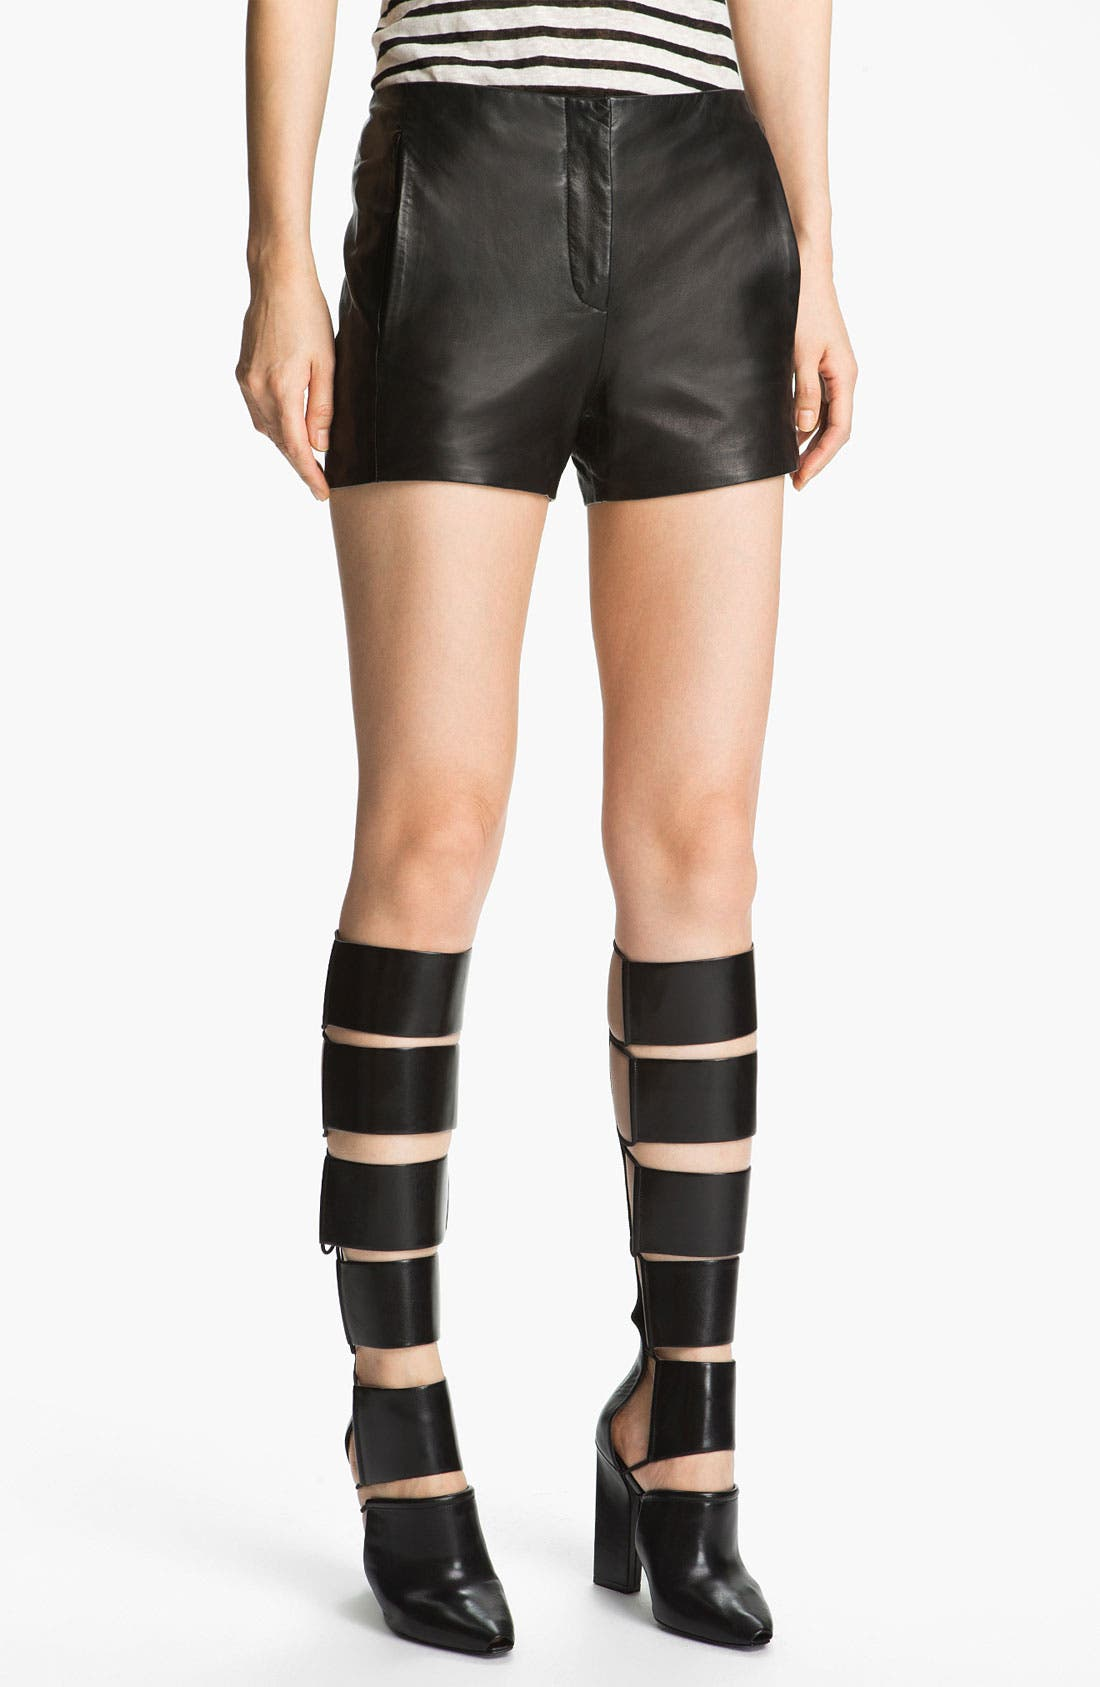 Alternate Image 1 Selected - T by Alexander Wang Shell & Leather Shorts